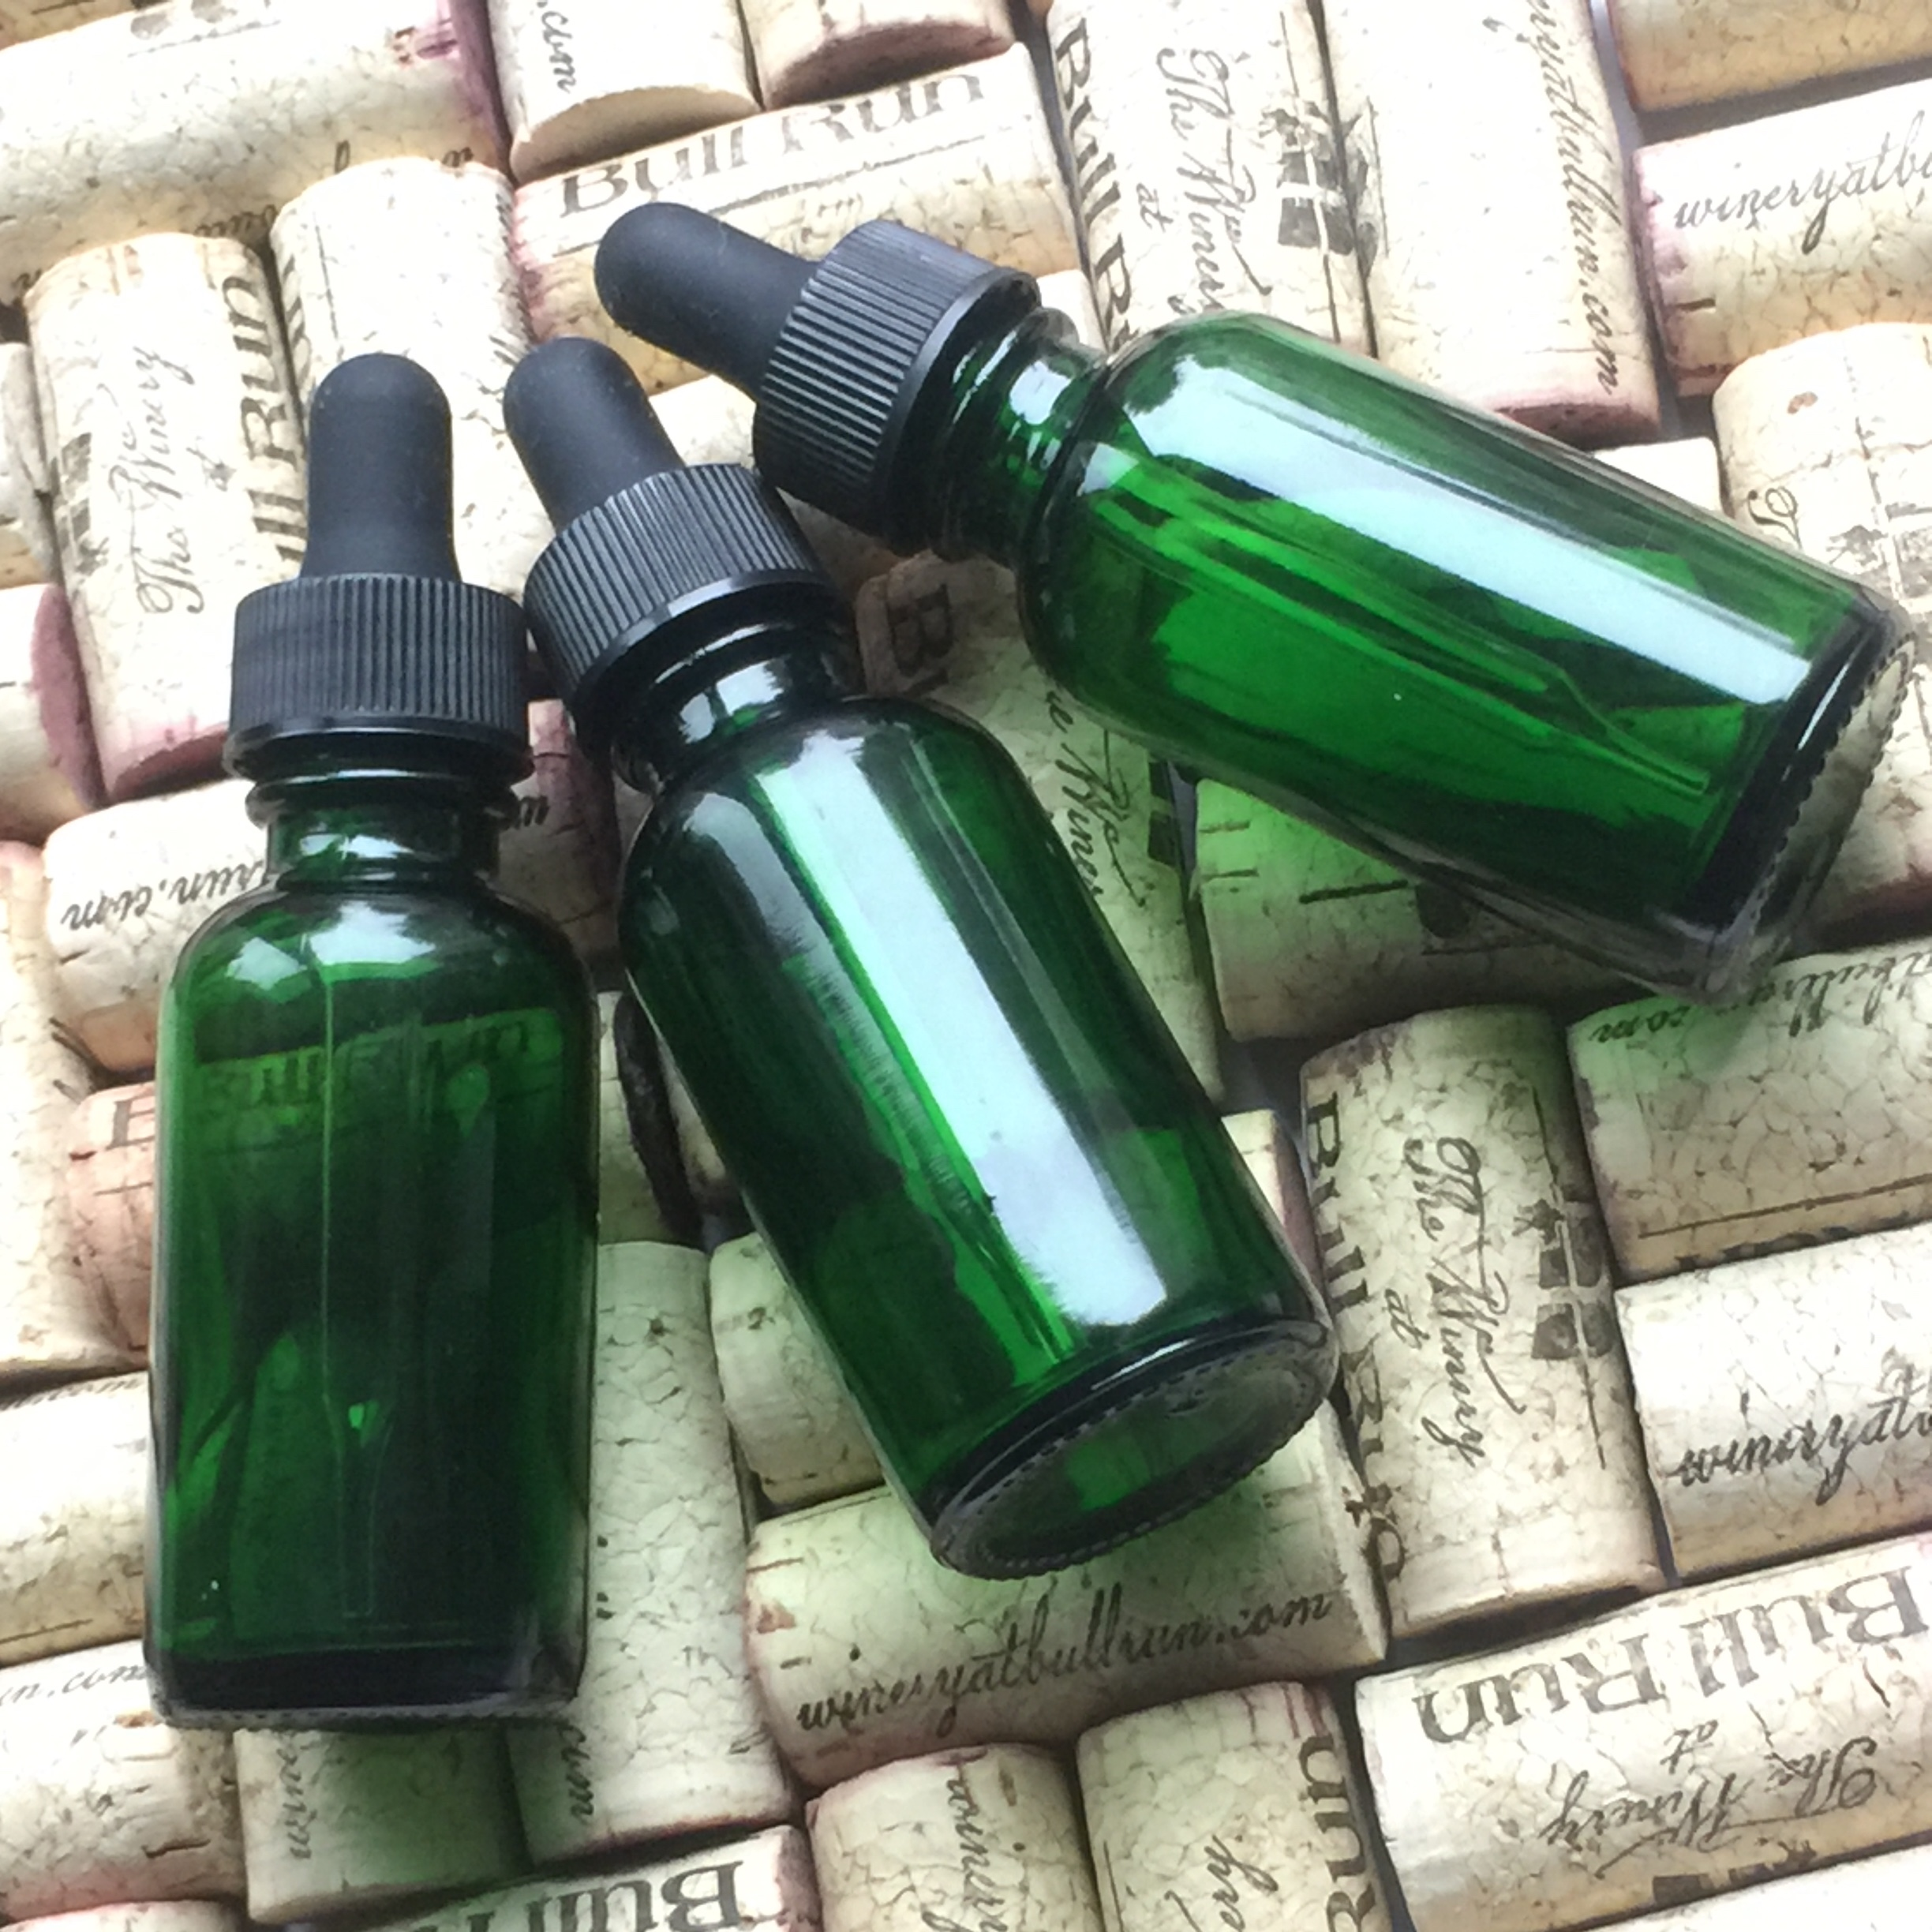 Green glass dropper bottles